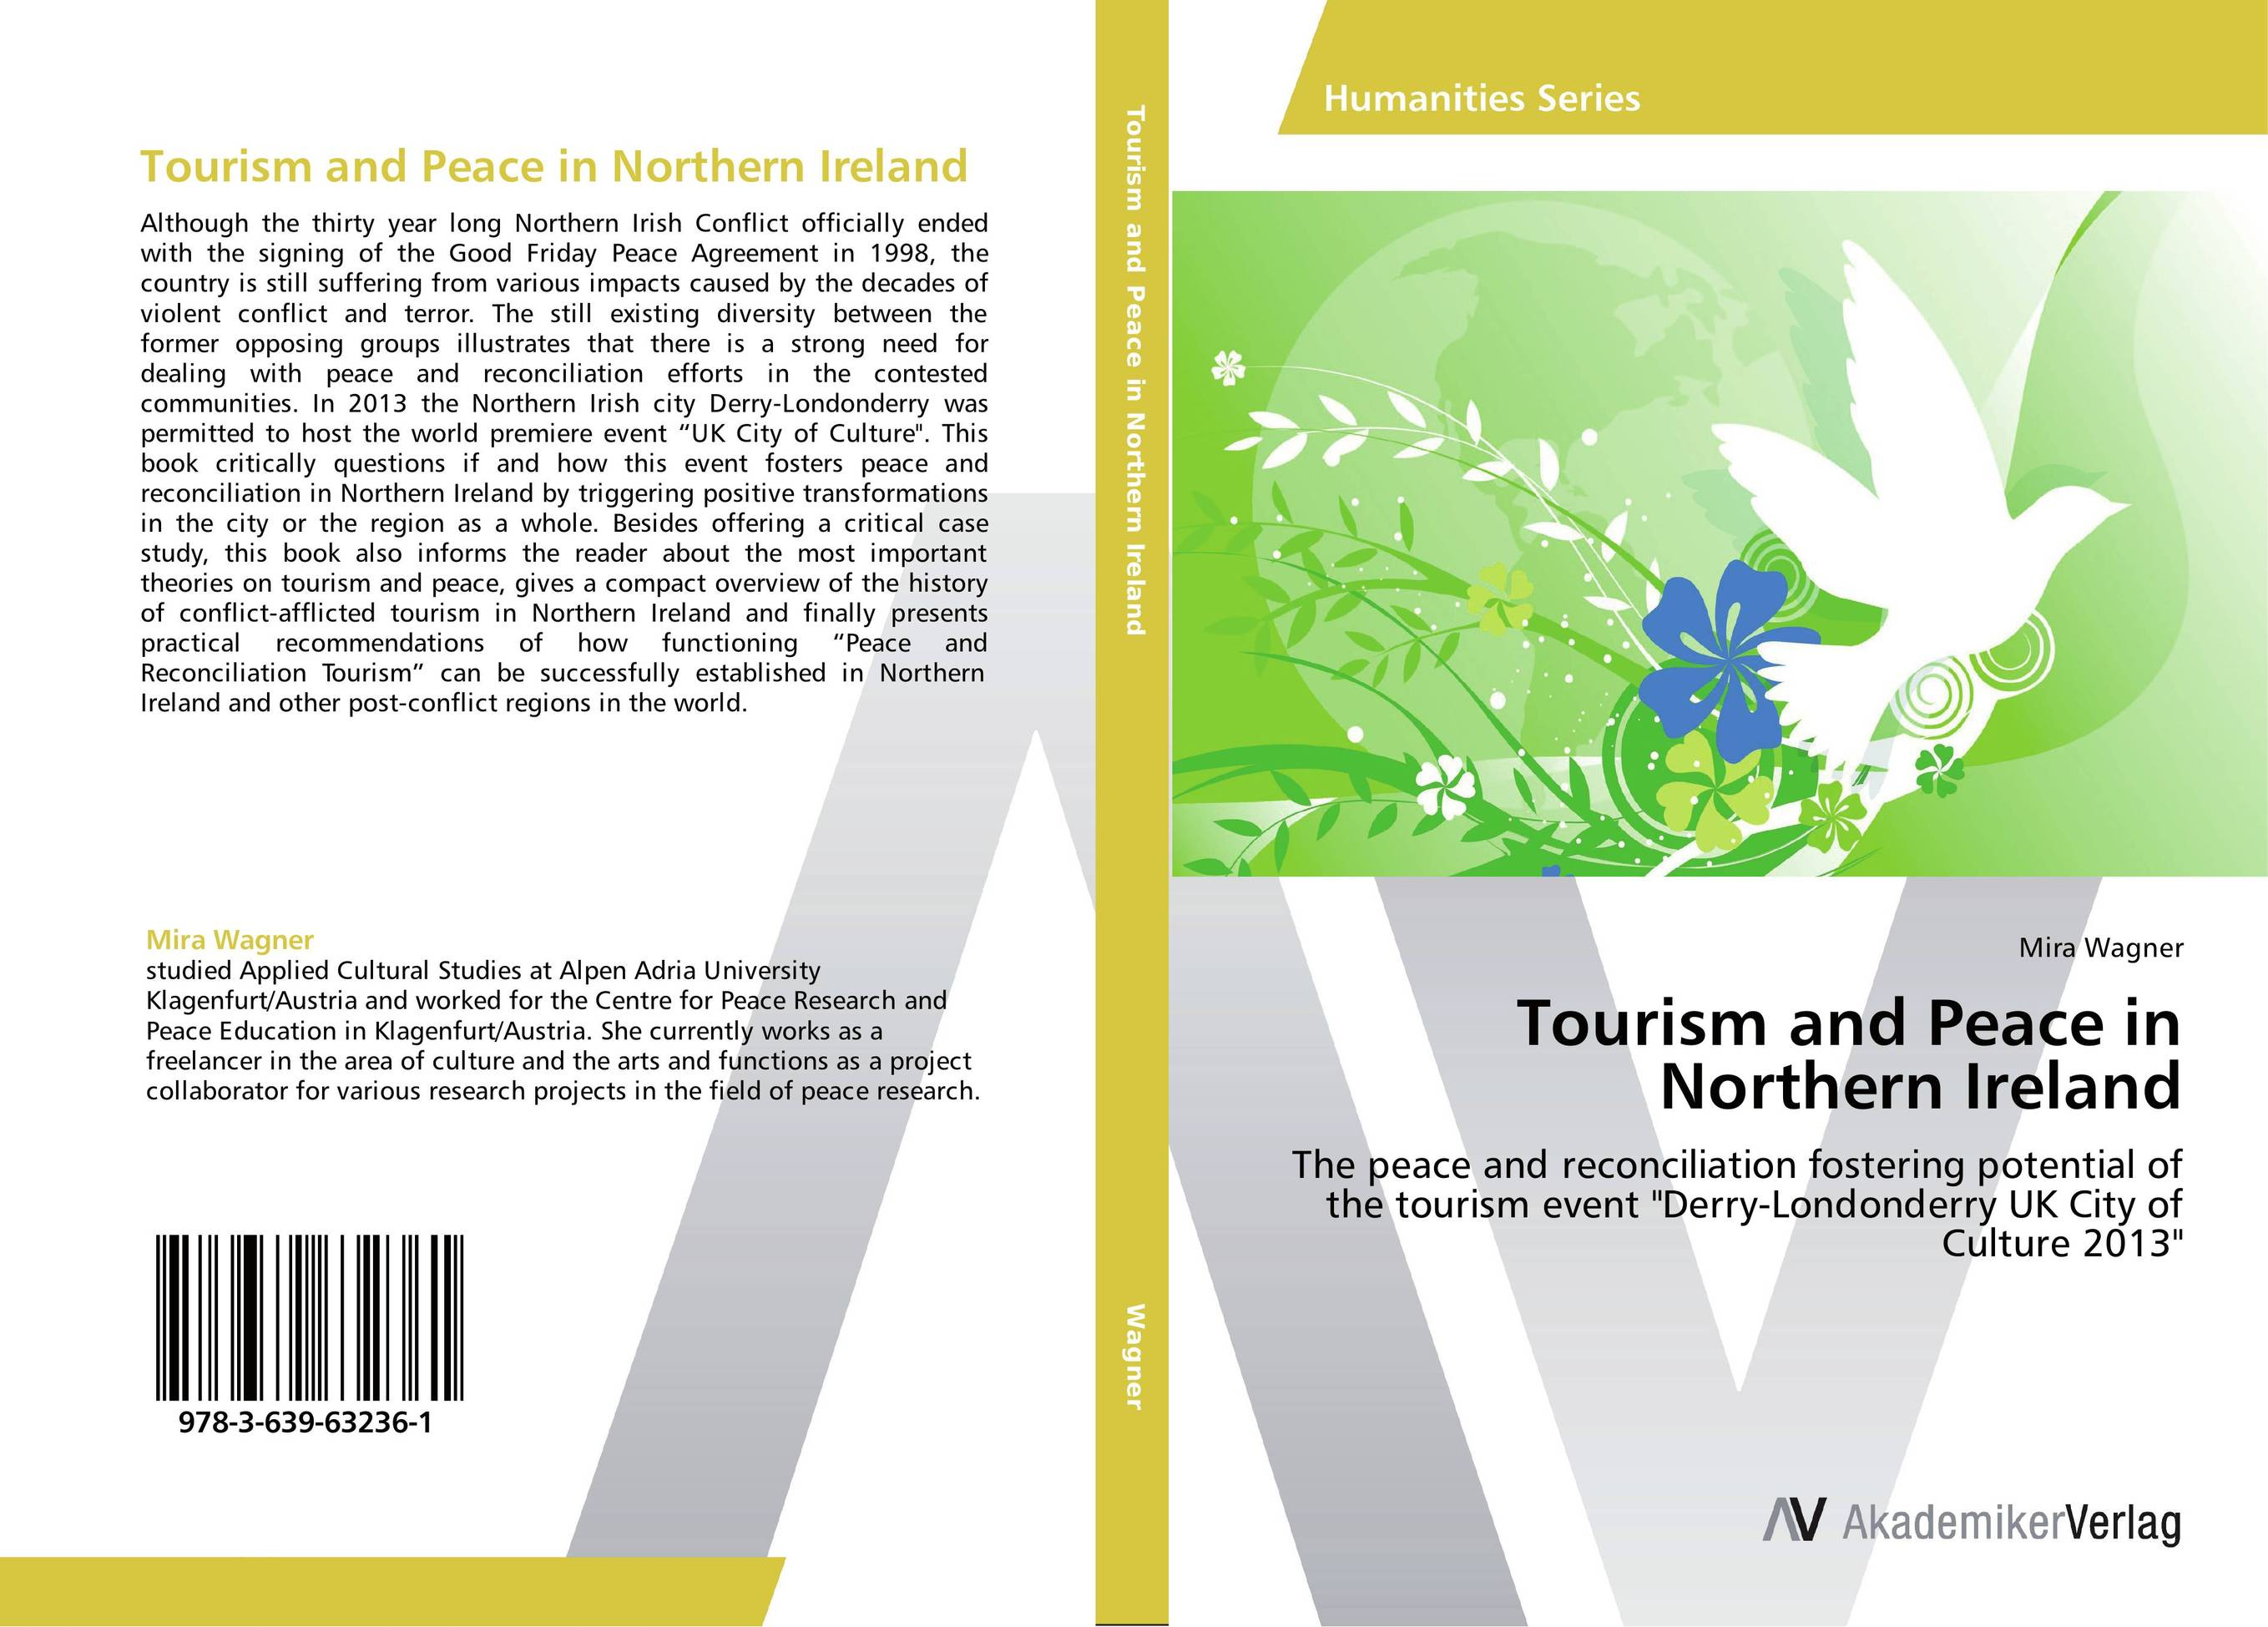 Tourism and Peace in Northern Ireland gregorian masters of chant moments of peace in ireland